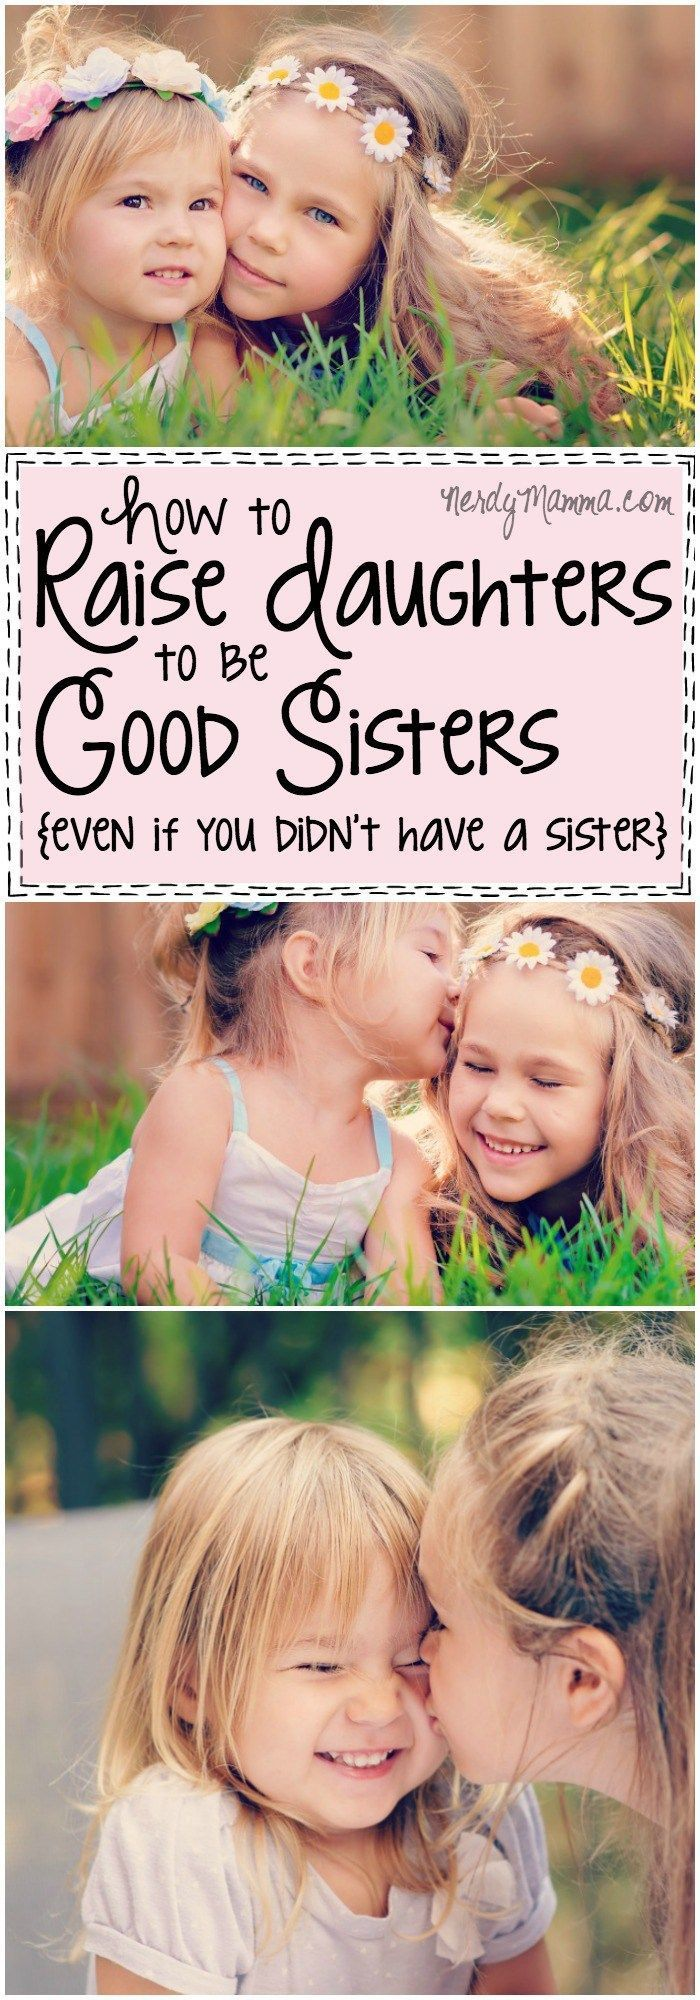 I love this parenting advice on how to raise daughters to be good sisters. I mean--I guess I've been over thinking it.